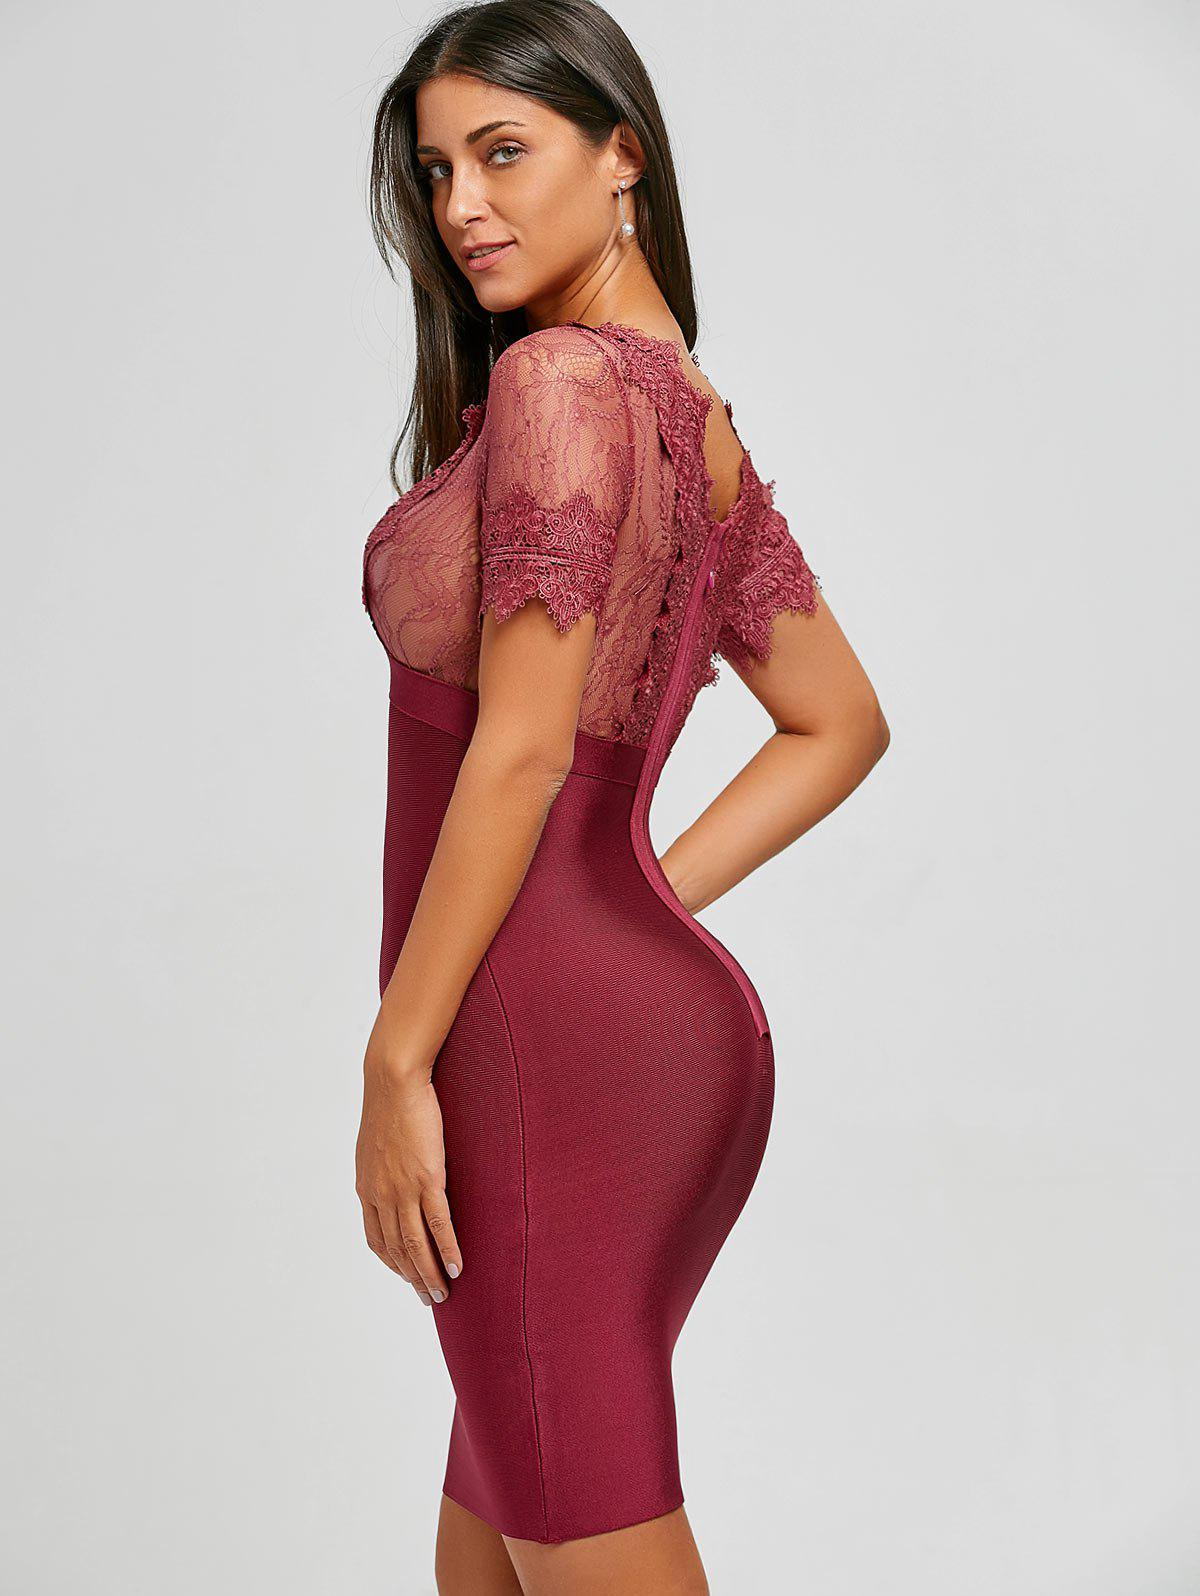 Lace Panel Plunging Neck Bandage Dress - RED L